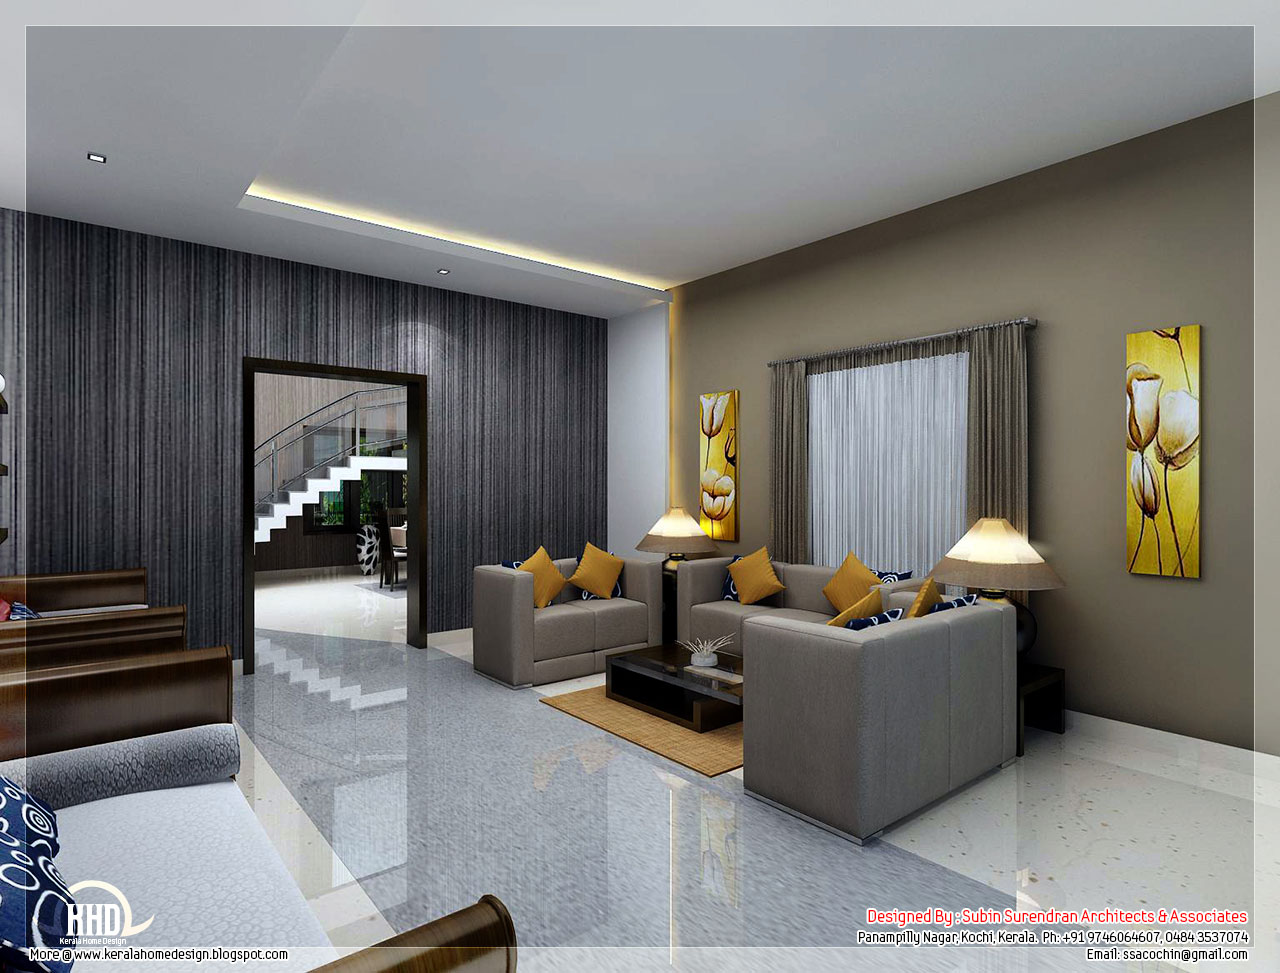 Awesome 3d interior renderings kerala home design and floor plans - Interior design home ...